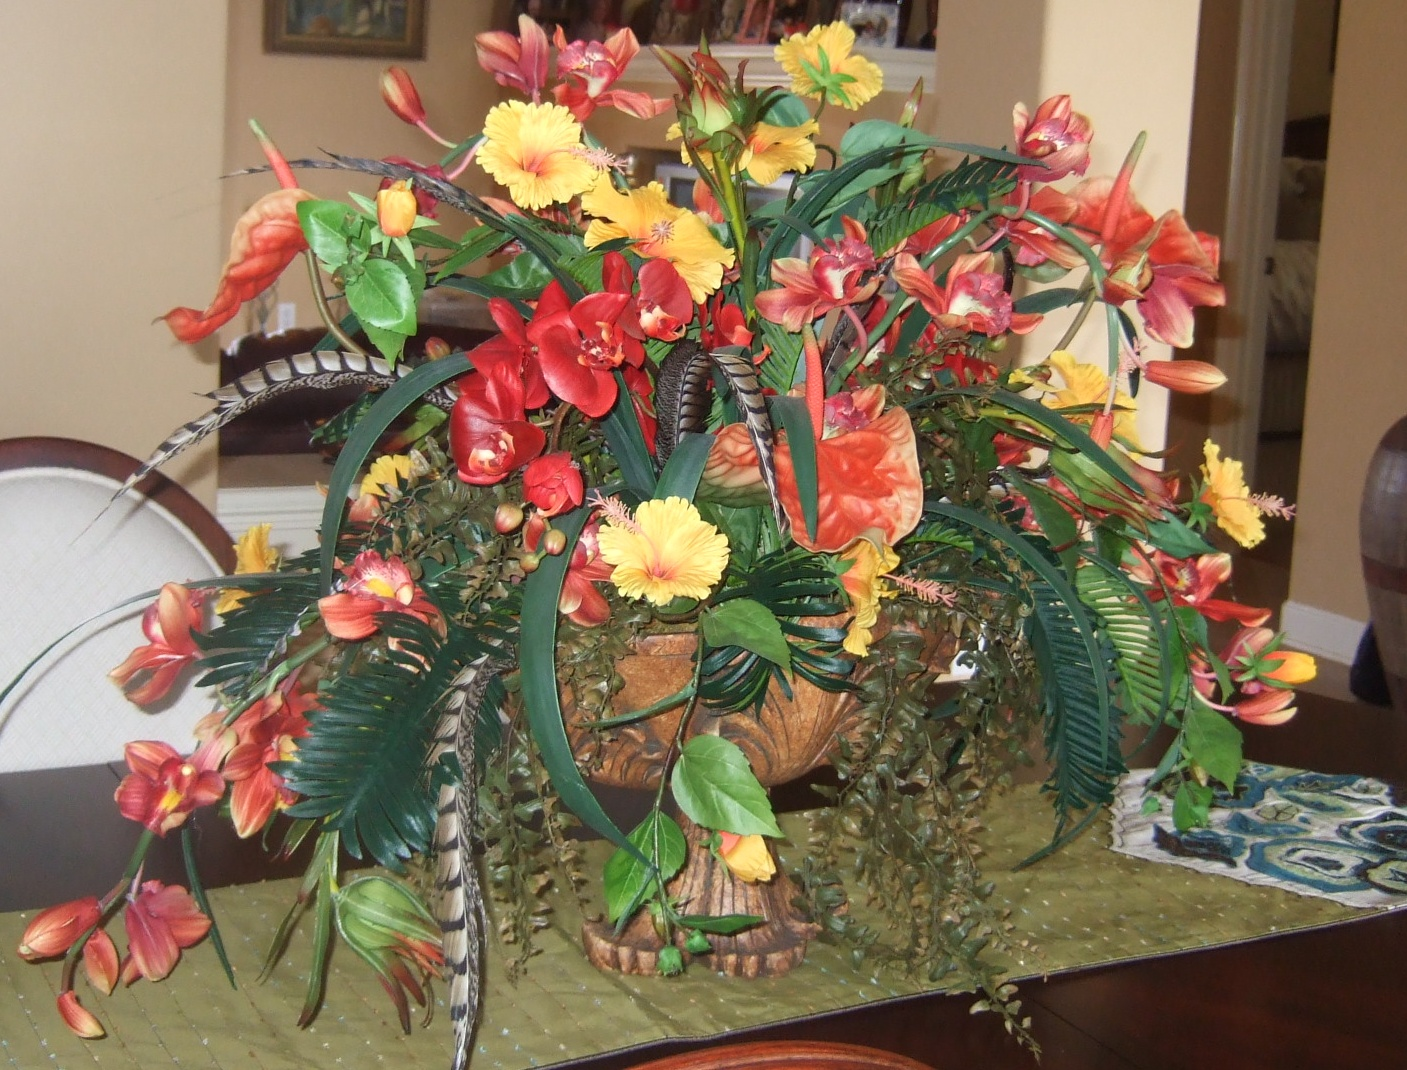 Fake Floral Arrangements For Home Ana Silk Flowers March 2013